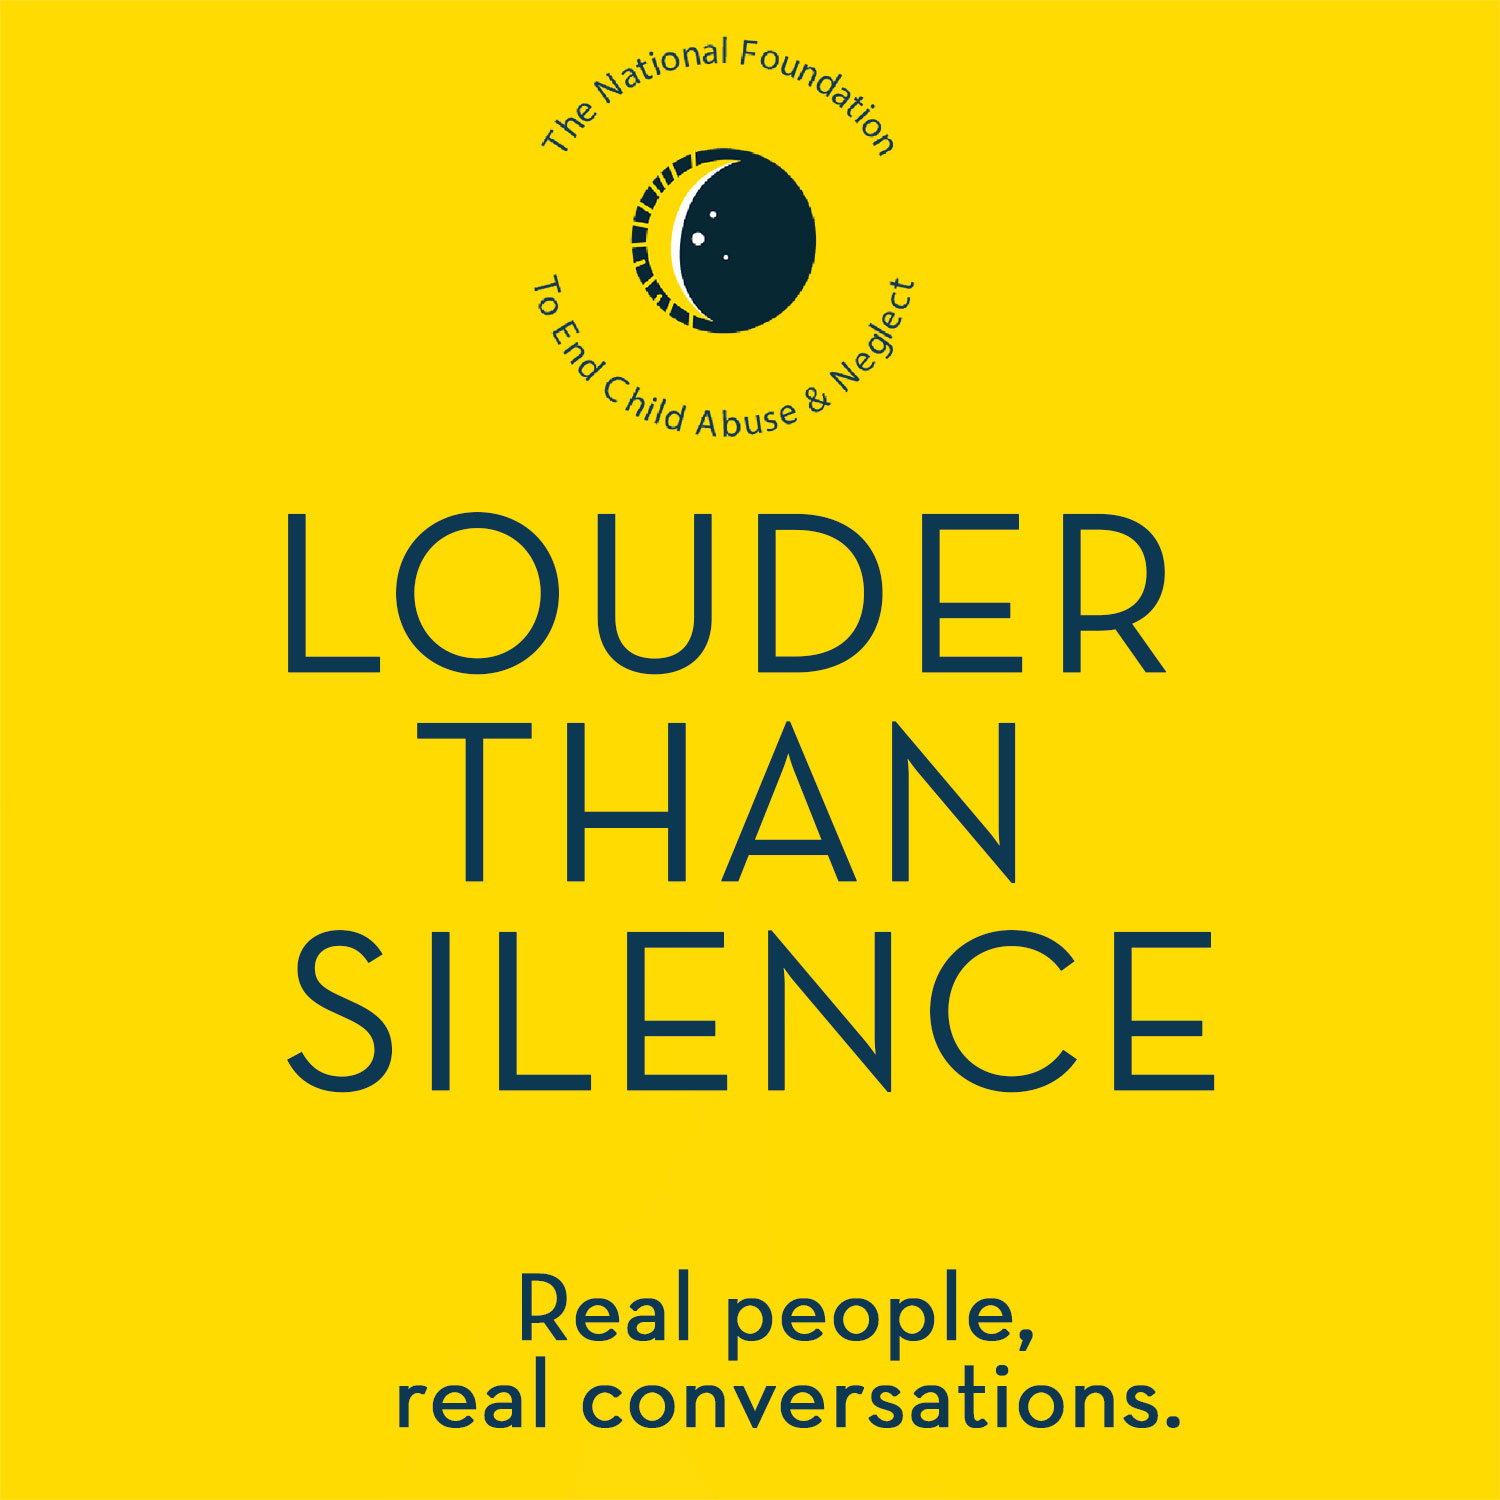 Louder than silence podcast